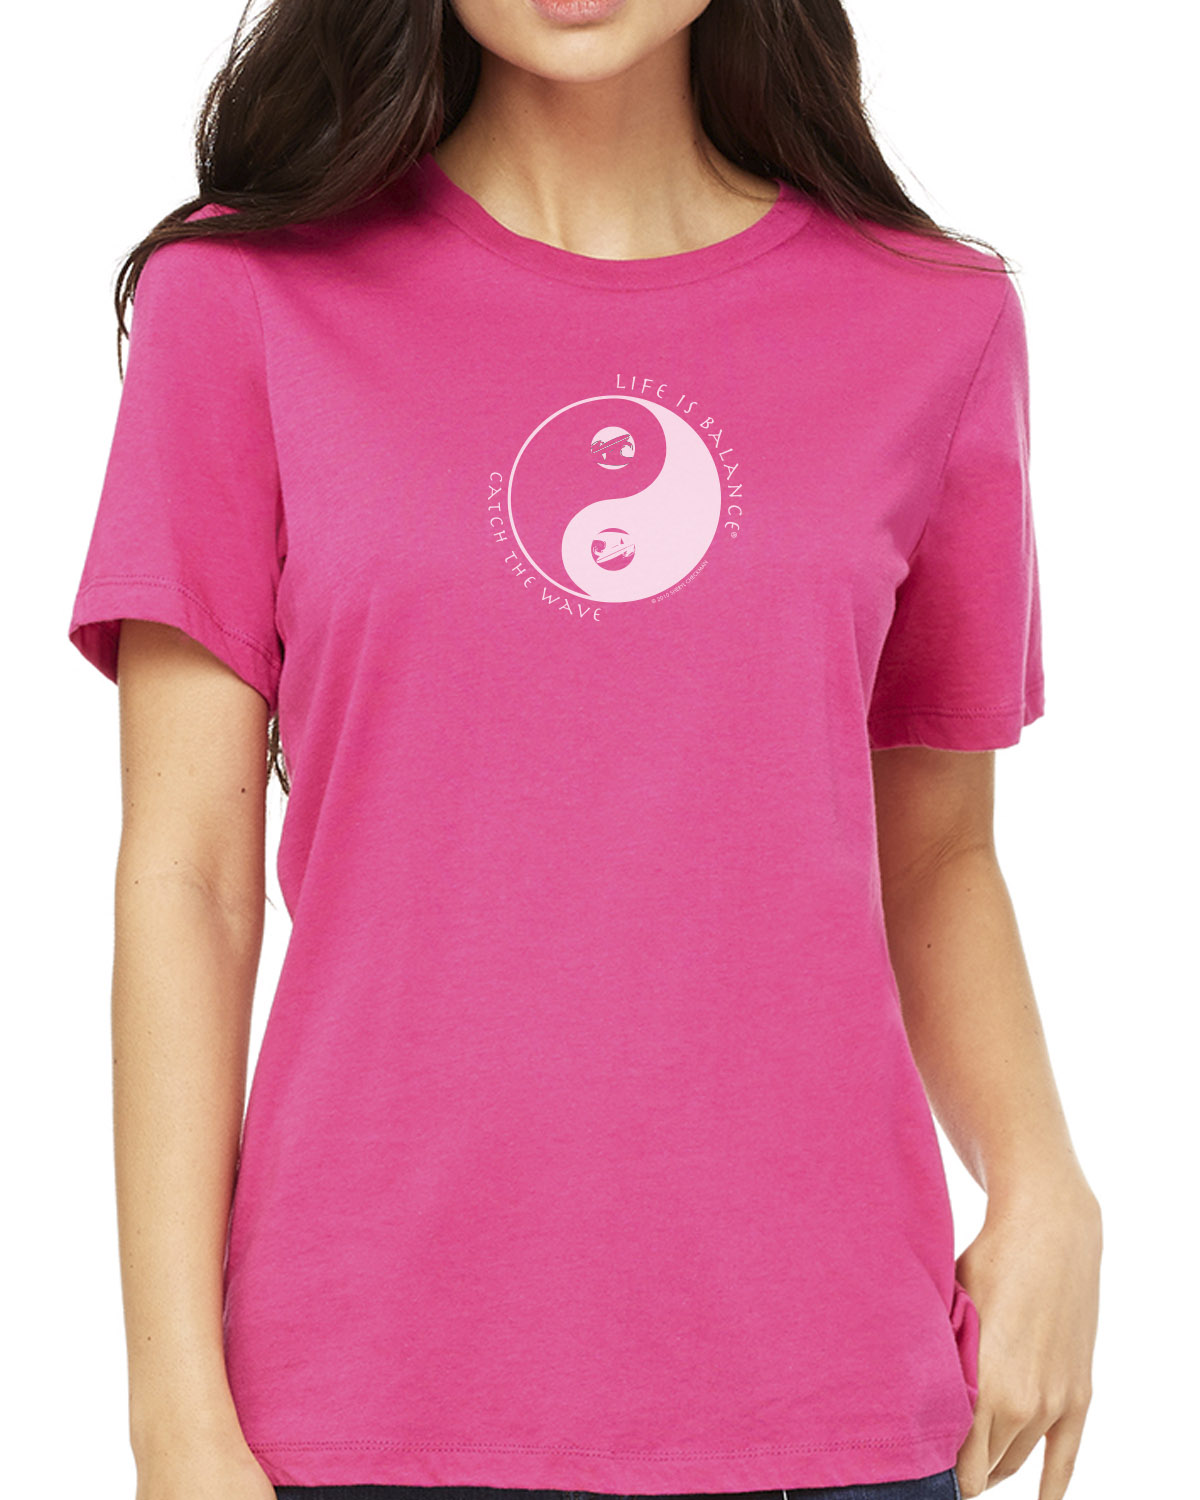 Women's short sleeve surfing t-shirt (berry)